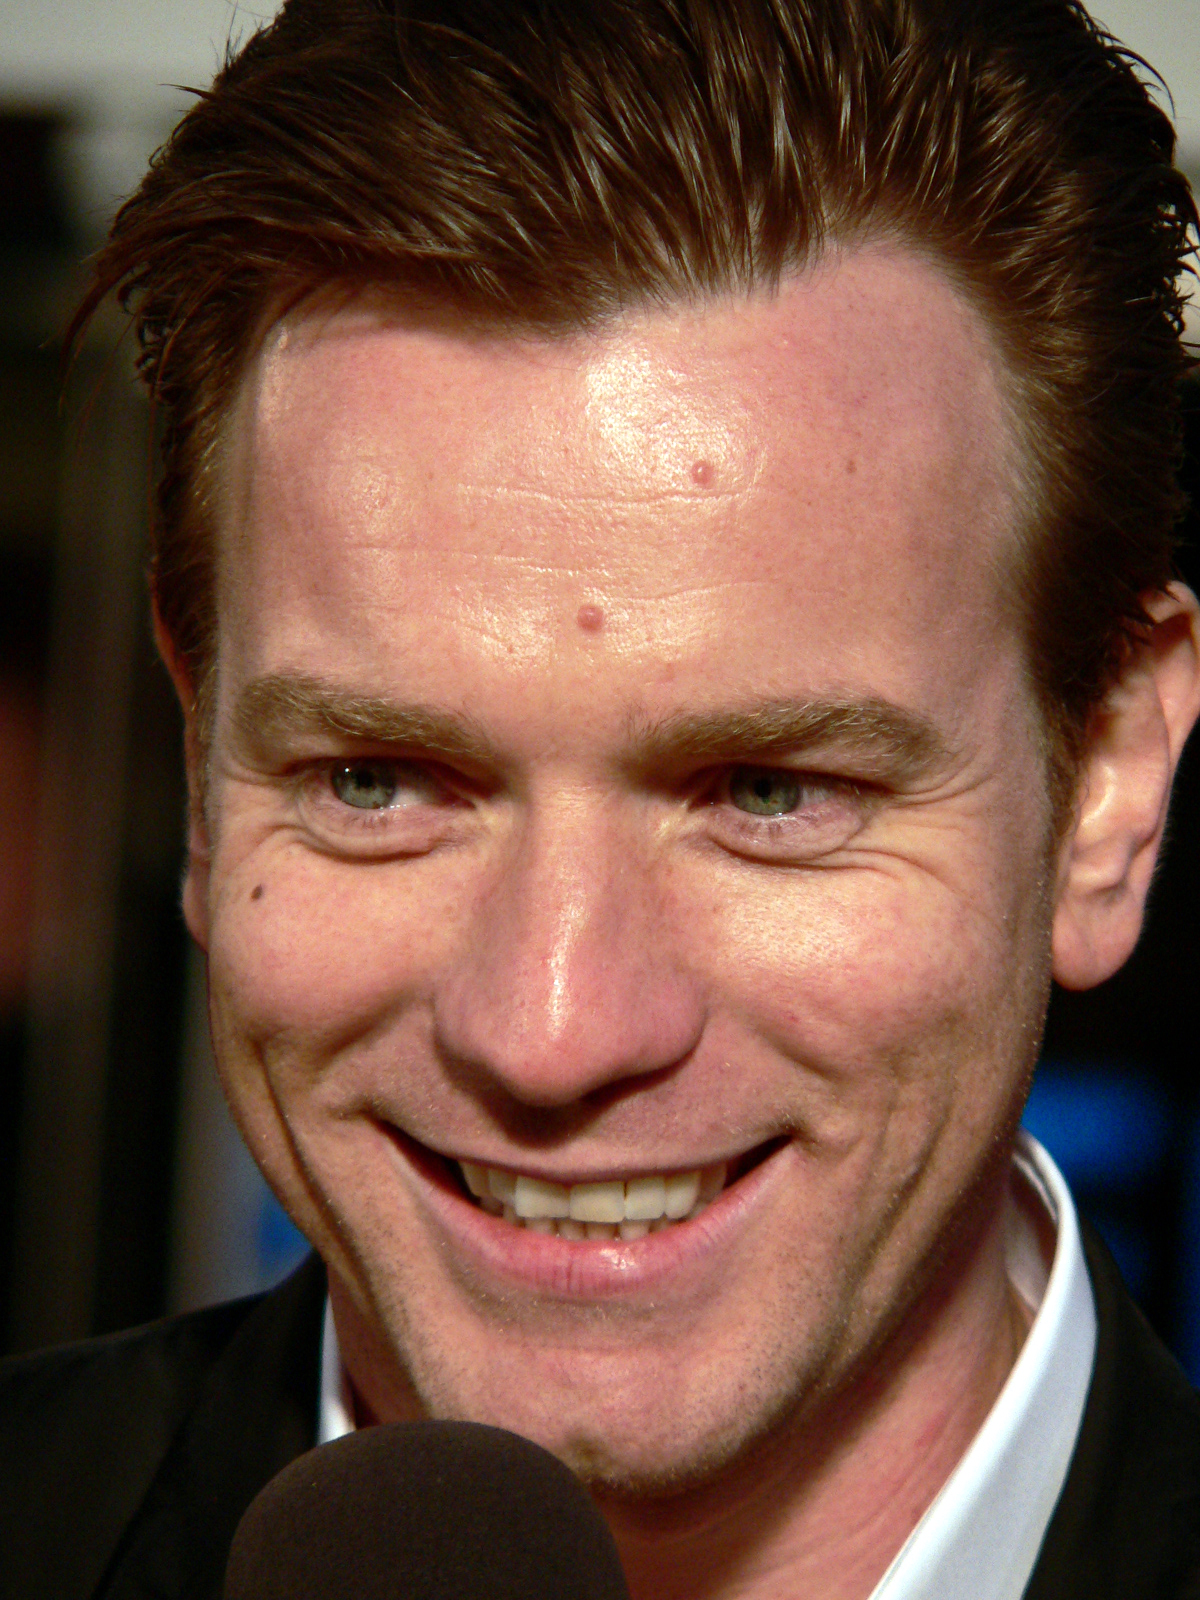 ewan mcgregor star warsewan mcgregor fargo, ewan mcgregor instagram, ewan mcgregor 2016, ewan mcgregor star wars, ewan mcgregor gif, ewan mcgregor 2017, ewan mcgregor young, ewan mcgregor come what may, ewan mcgregor height, ewan mcgregor photoshoot, ewan mcgregor family, ewan mcgregor moulin rouge, ewan mcgregor фильмография, ewan mcgregor your song, ewan mcgregor daughter, ewan mcgregor your song скачать, ewan mcgregor личная жизнь, ewan mcgregor vk, ewan mcgregor на игле, ewan mcgregor movies